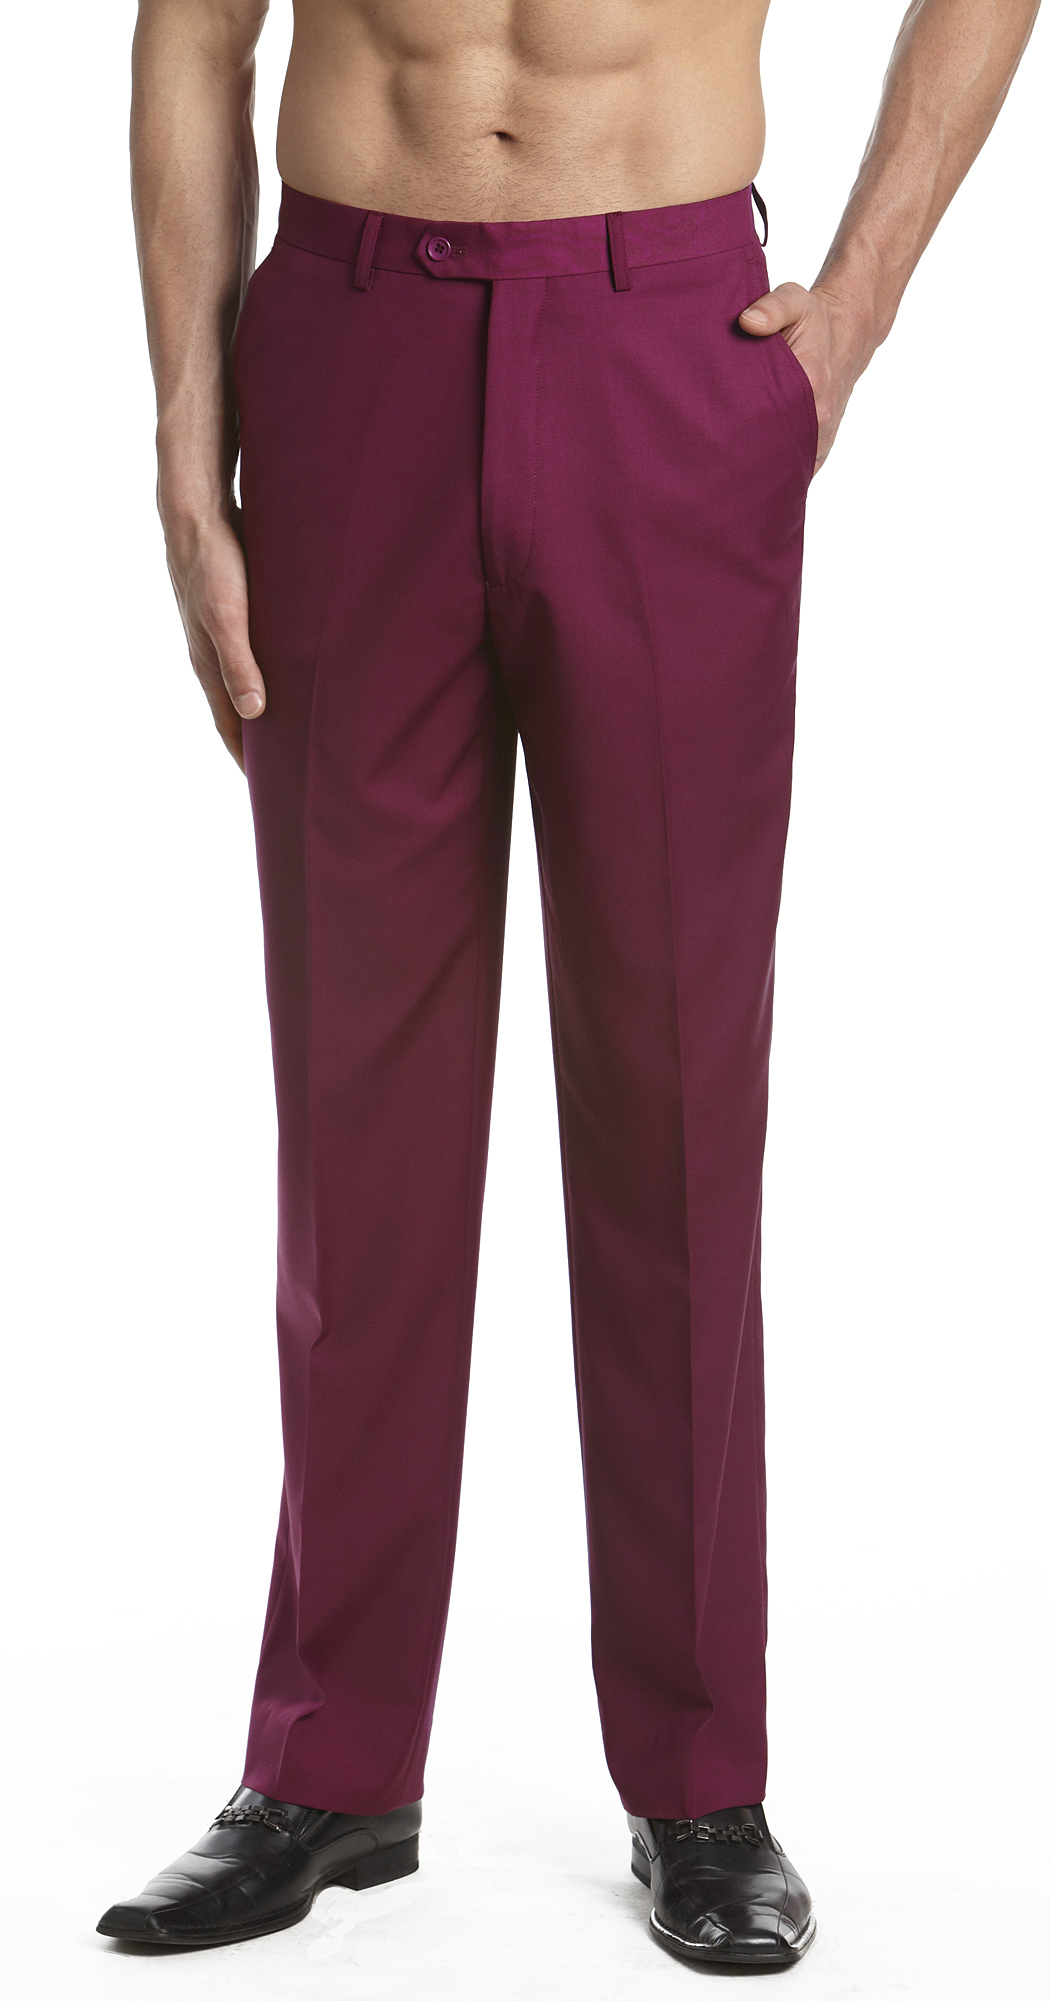 Shop Men's Pants: Dress Pants, Chinos, Khakis, pants and more at Macy's! Macy's Presents: The Edit - A curated mix of fashion and inspiration Check It Out Free Shipping with $75 .